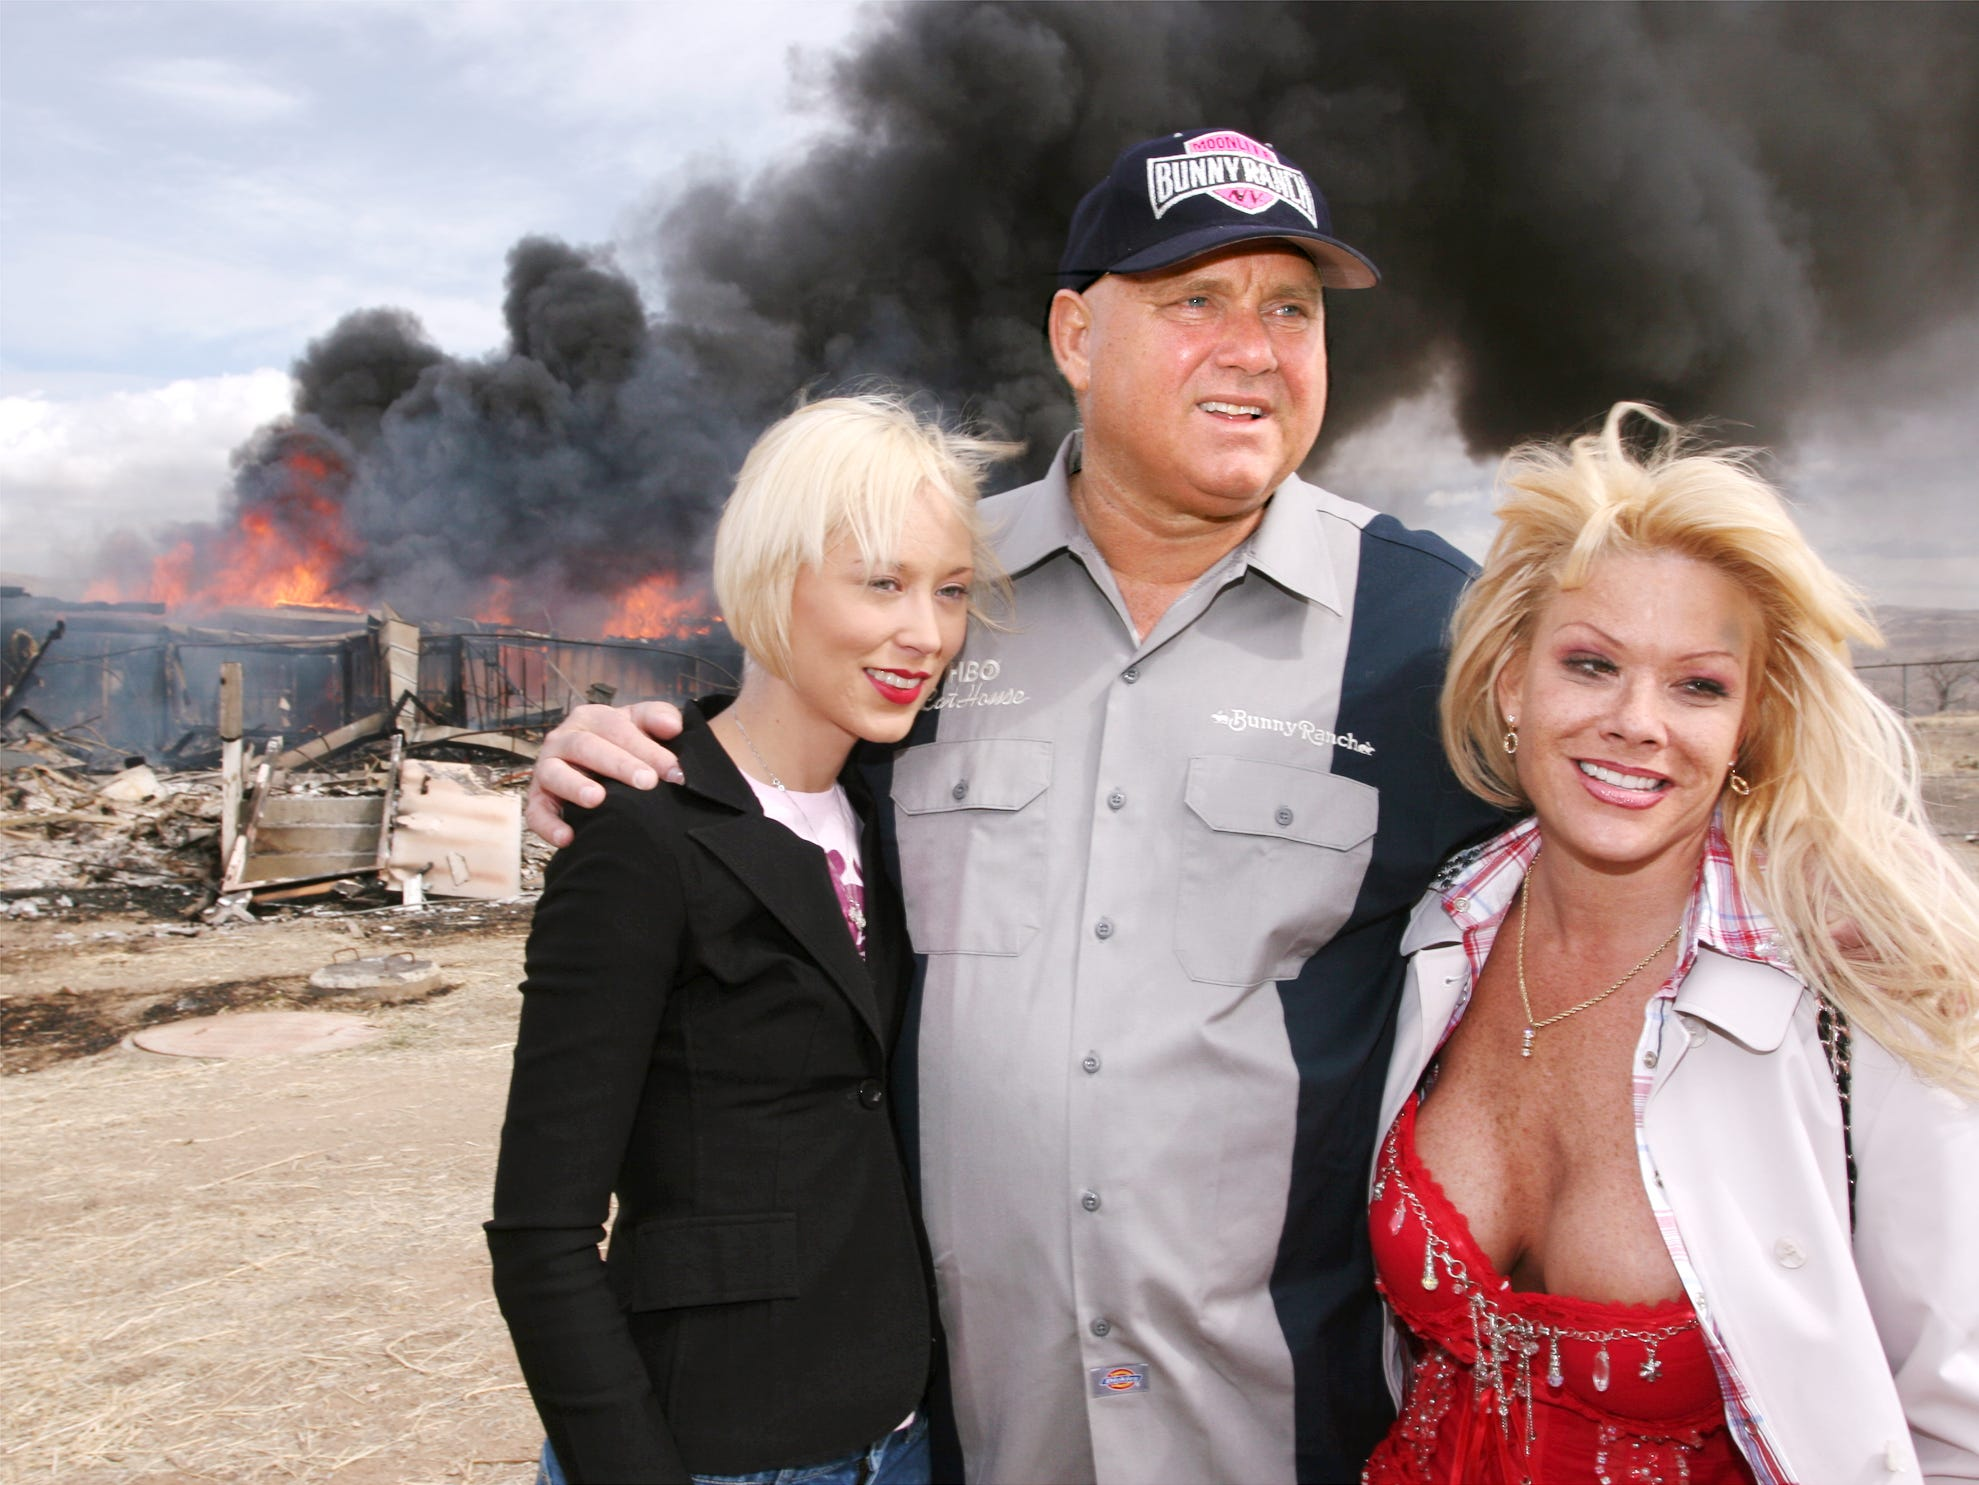 """Moonlite Bunnyranch brothel owner Dennis Hof poses with two of his """"working girls"""" Brooke Taylor, left, and a woman working under the name """"Airforce Amy"""", right, as firefighters burn down remains of the former Mustang Ranch 2 brothel east of Reno, Nevada on Sunday, March 25, 2007. Hof donated the building to the Storey County fire department for fire training. (AP Photo/Debra Reid)"""